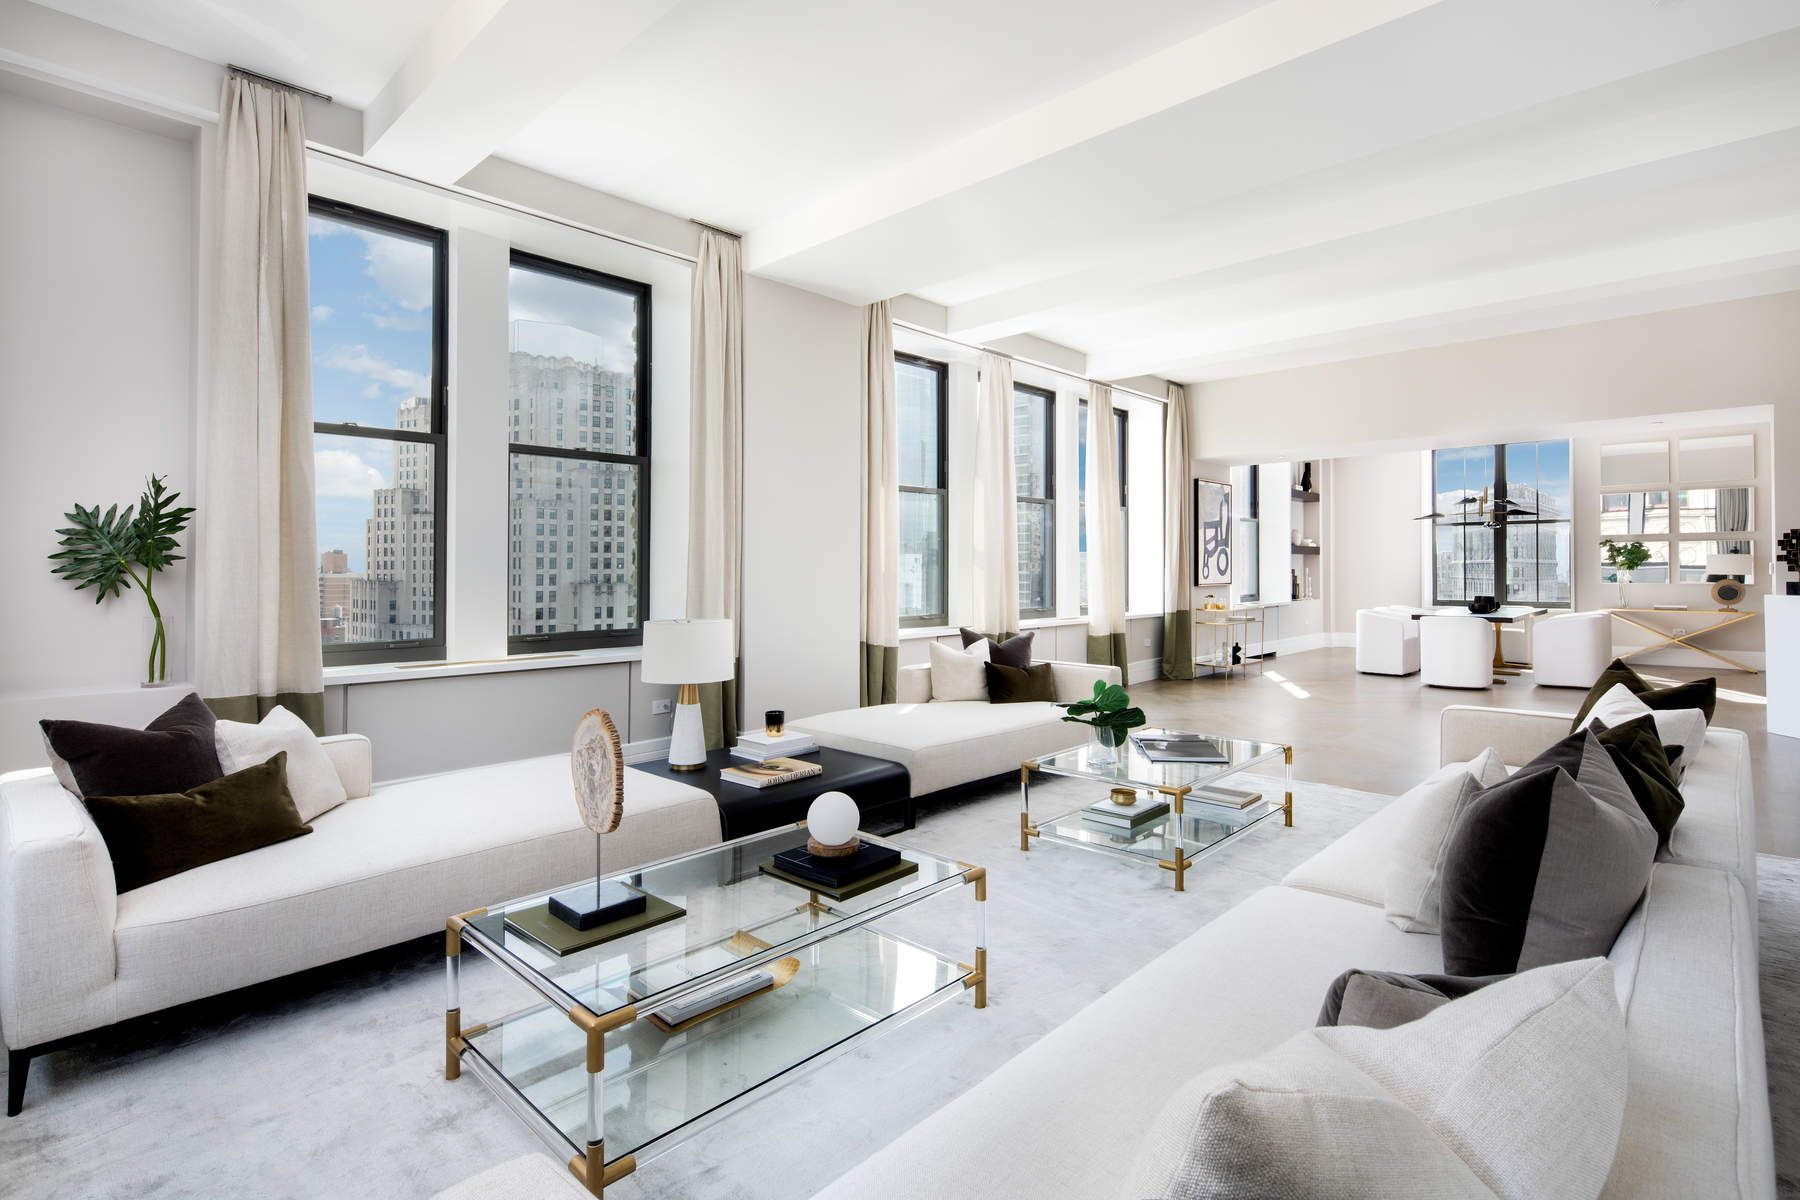 Condominium for Sale at 212 Fifth Avenue, Apt. 21AB 212 Fifth Avenue Apt 21AB, New York, New York 10010 United States